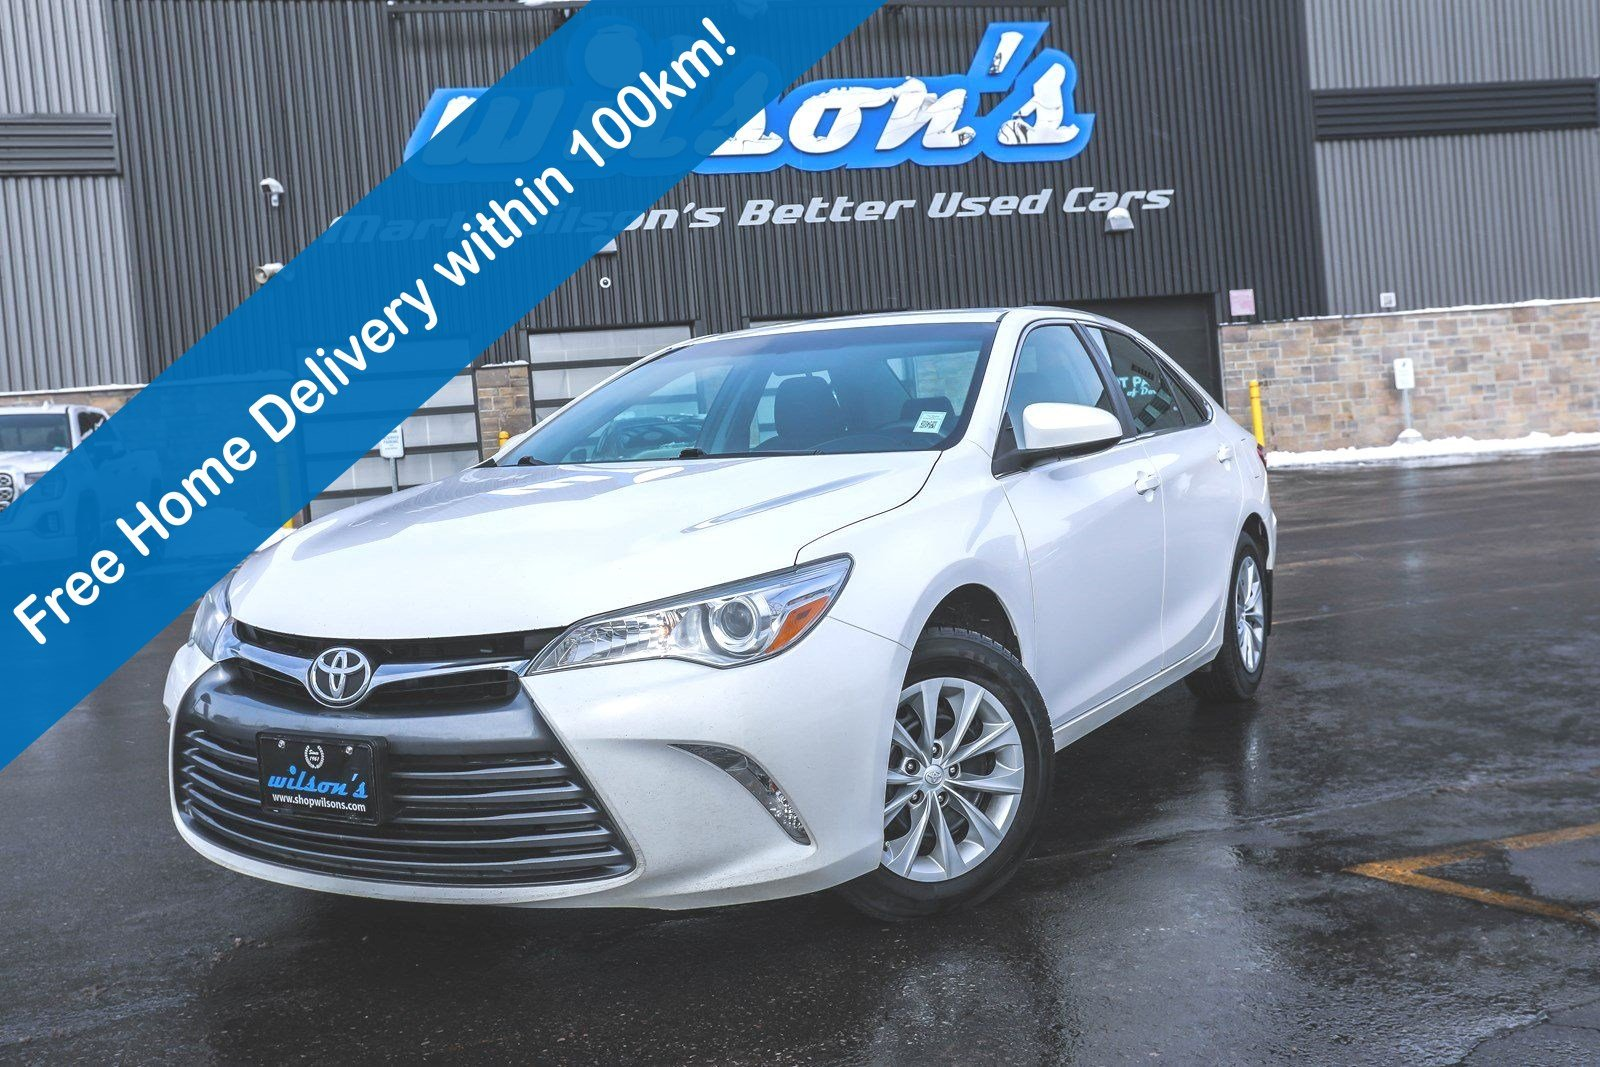 Certified Pre-Owned 2015 Toyota Camry LE, Rear Camera, Bluetooth, Keyless Entry, Cruise Control and more!